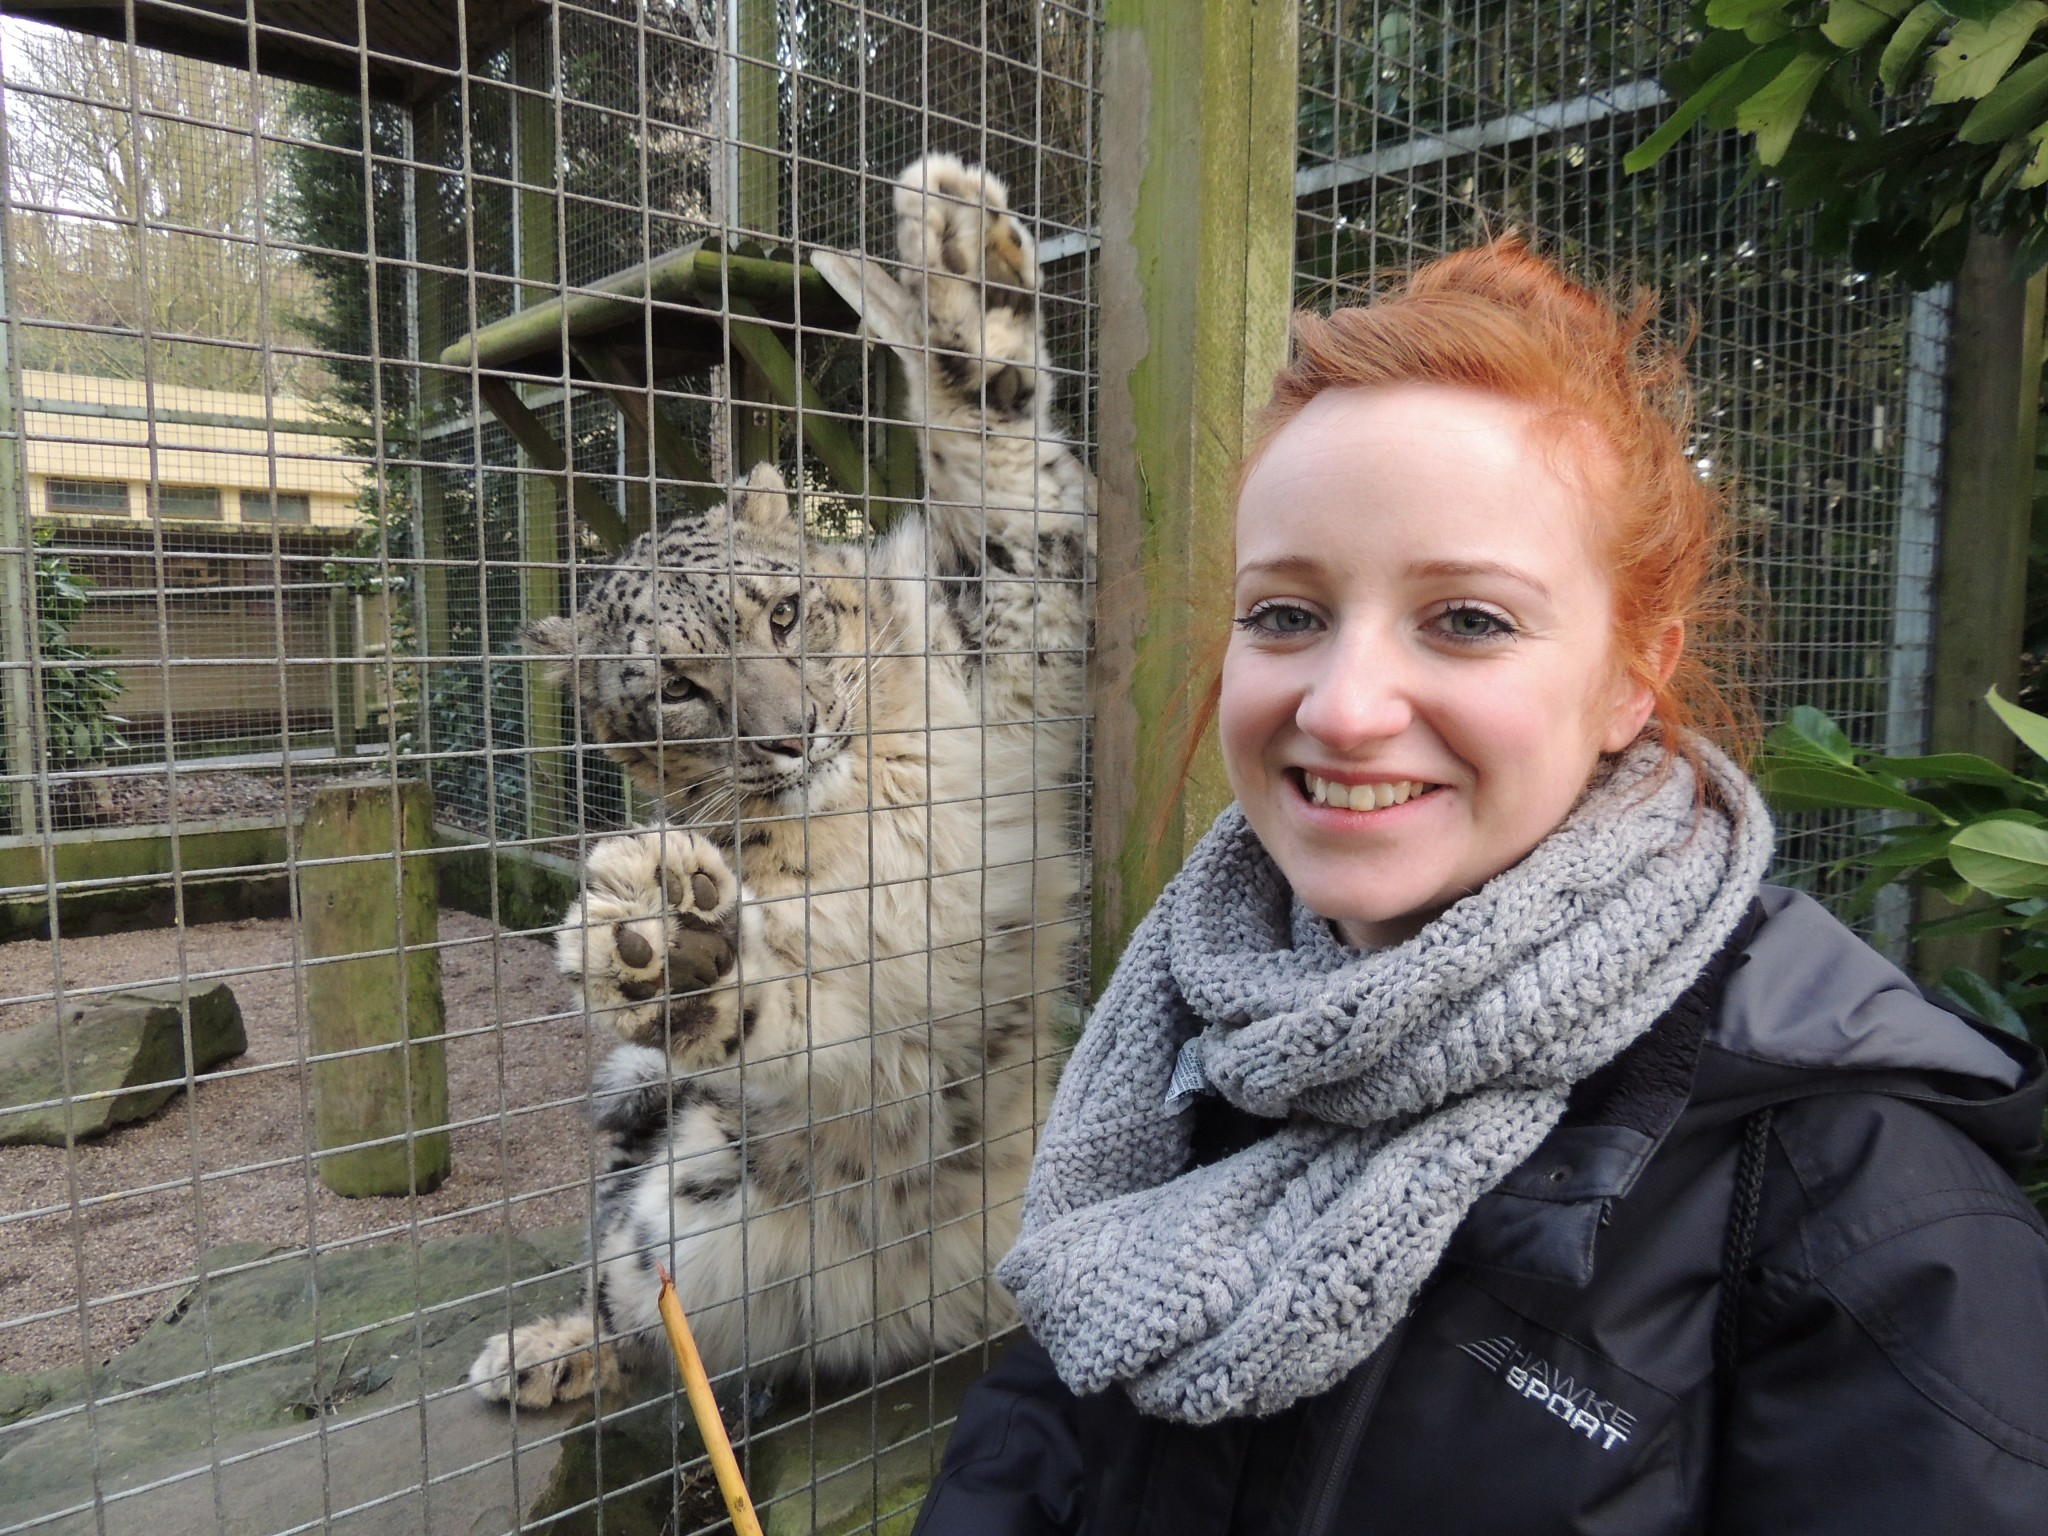 Zoo Keeper for a Day - Dudley Zoological Gardens